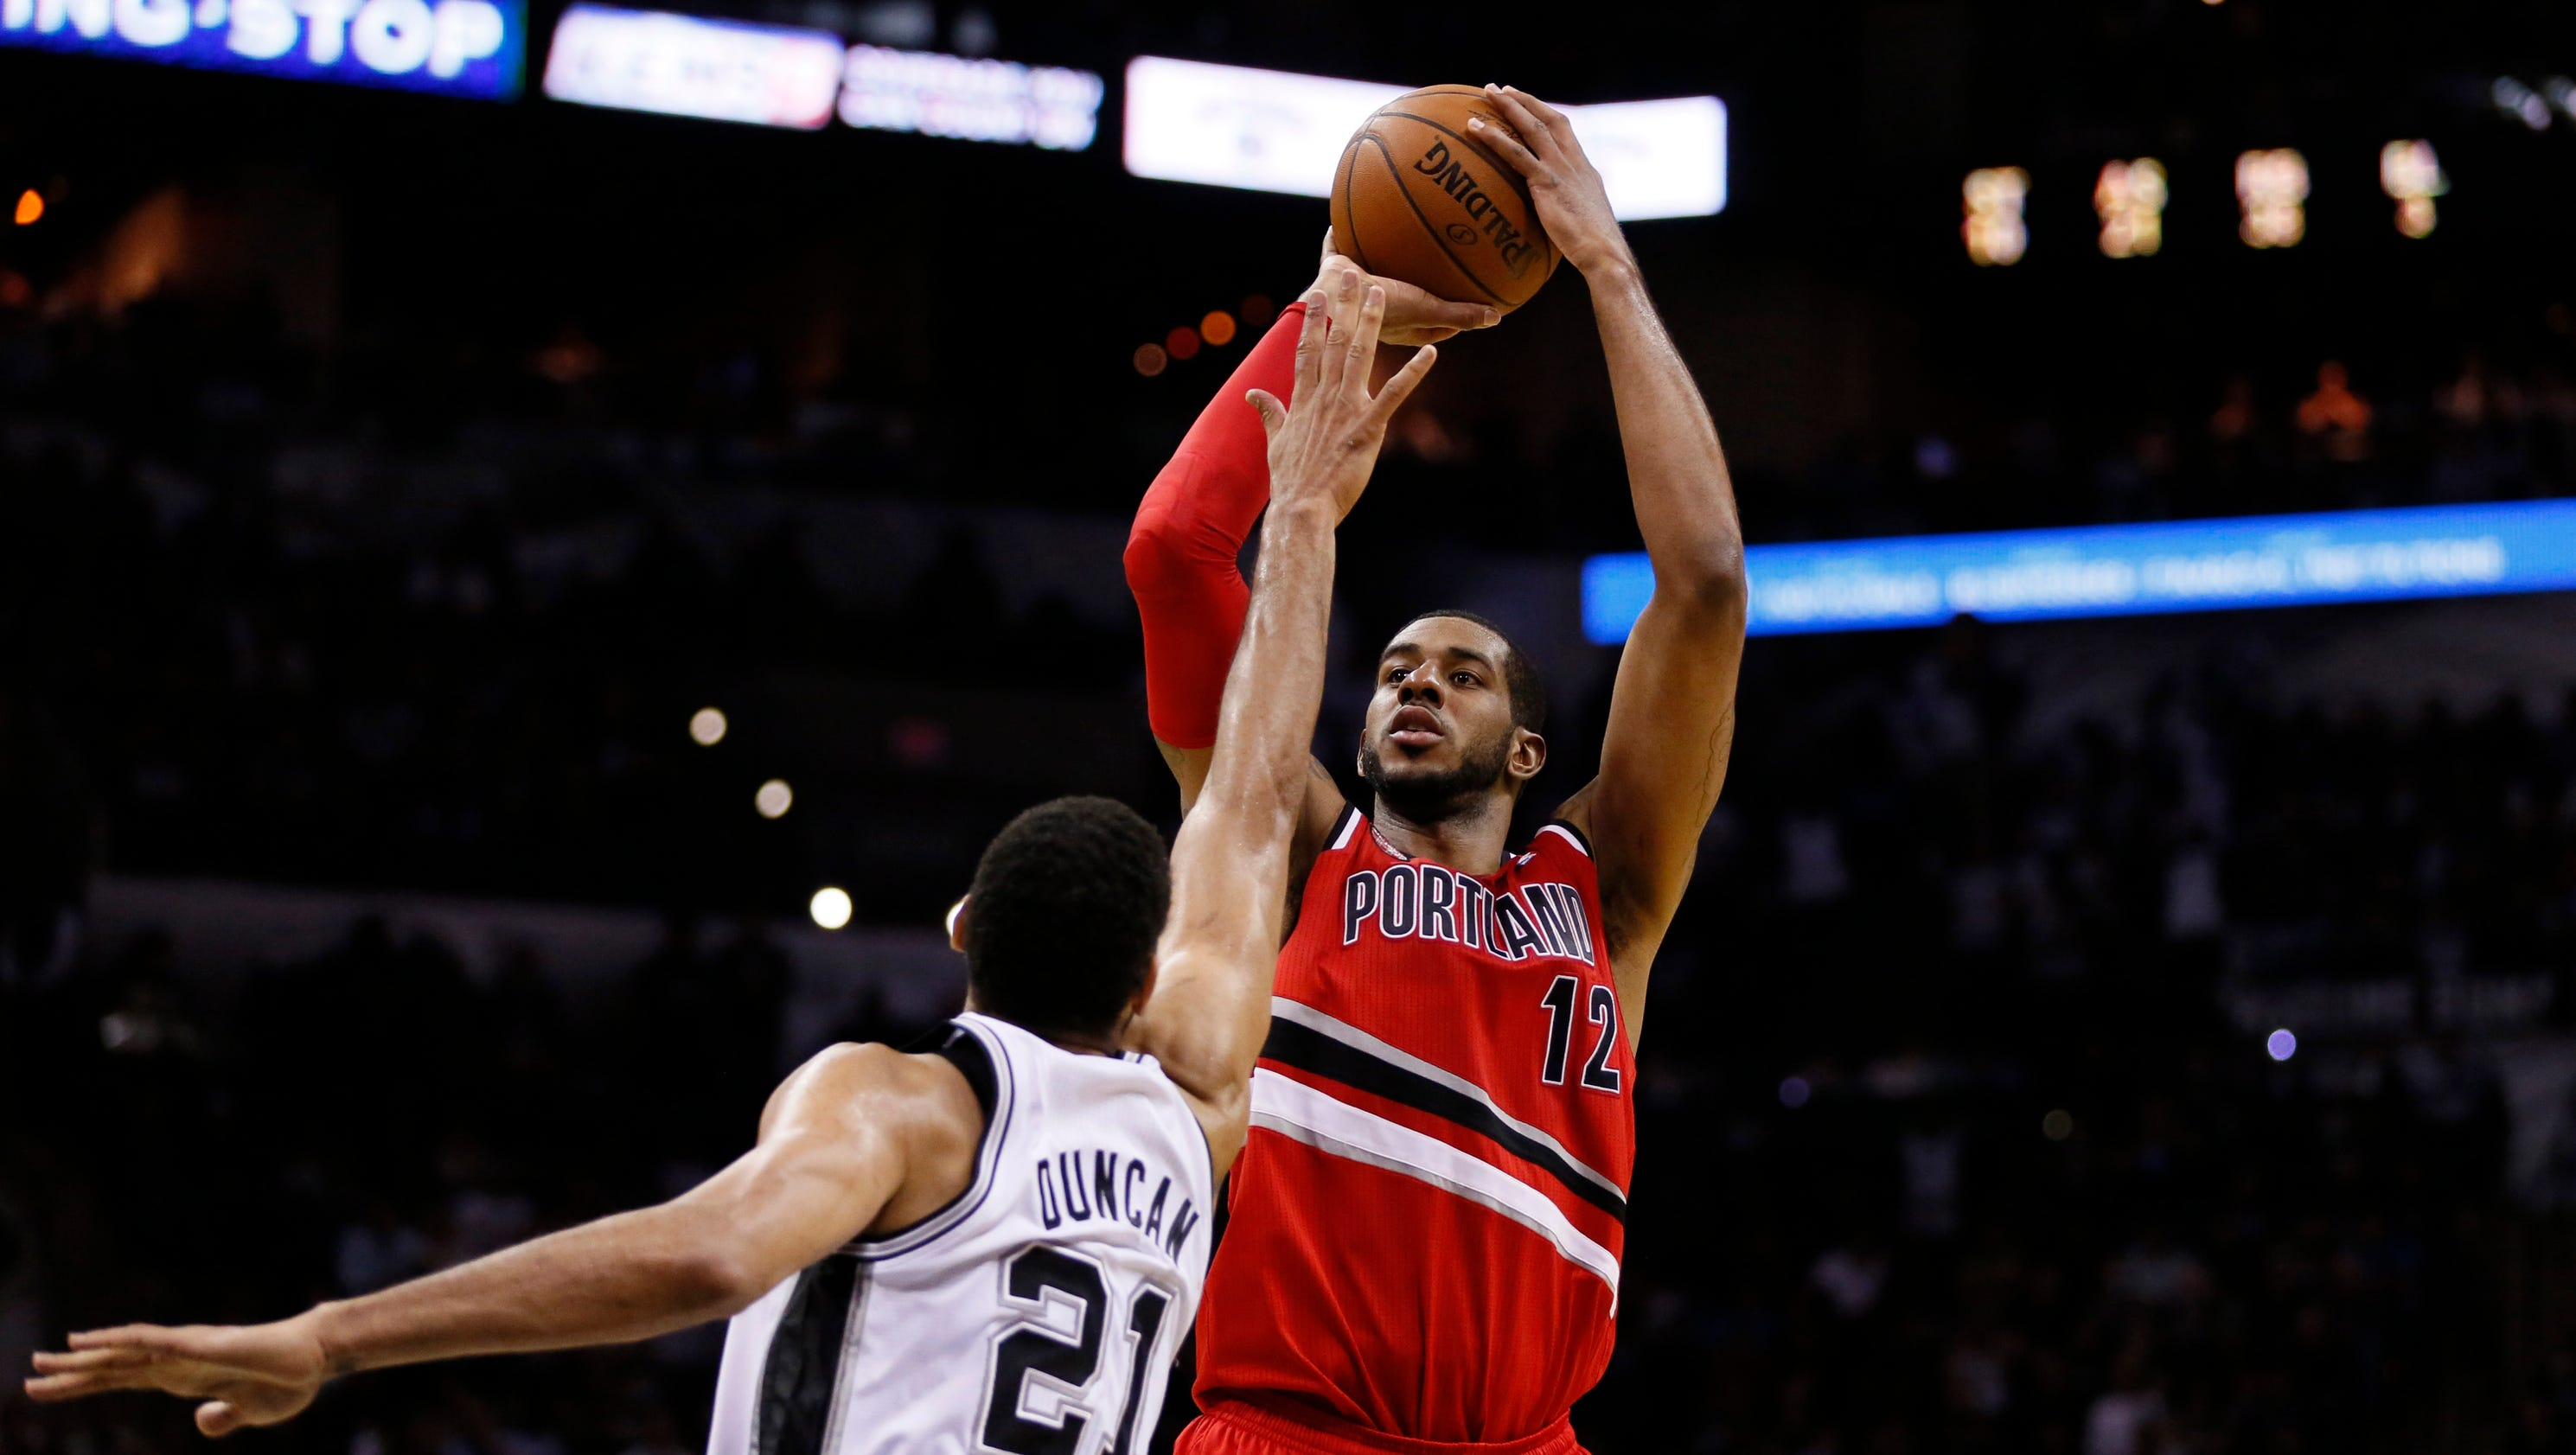 LaMarcus Aldridge agrees to contract with Spurs